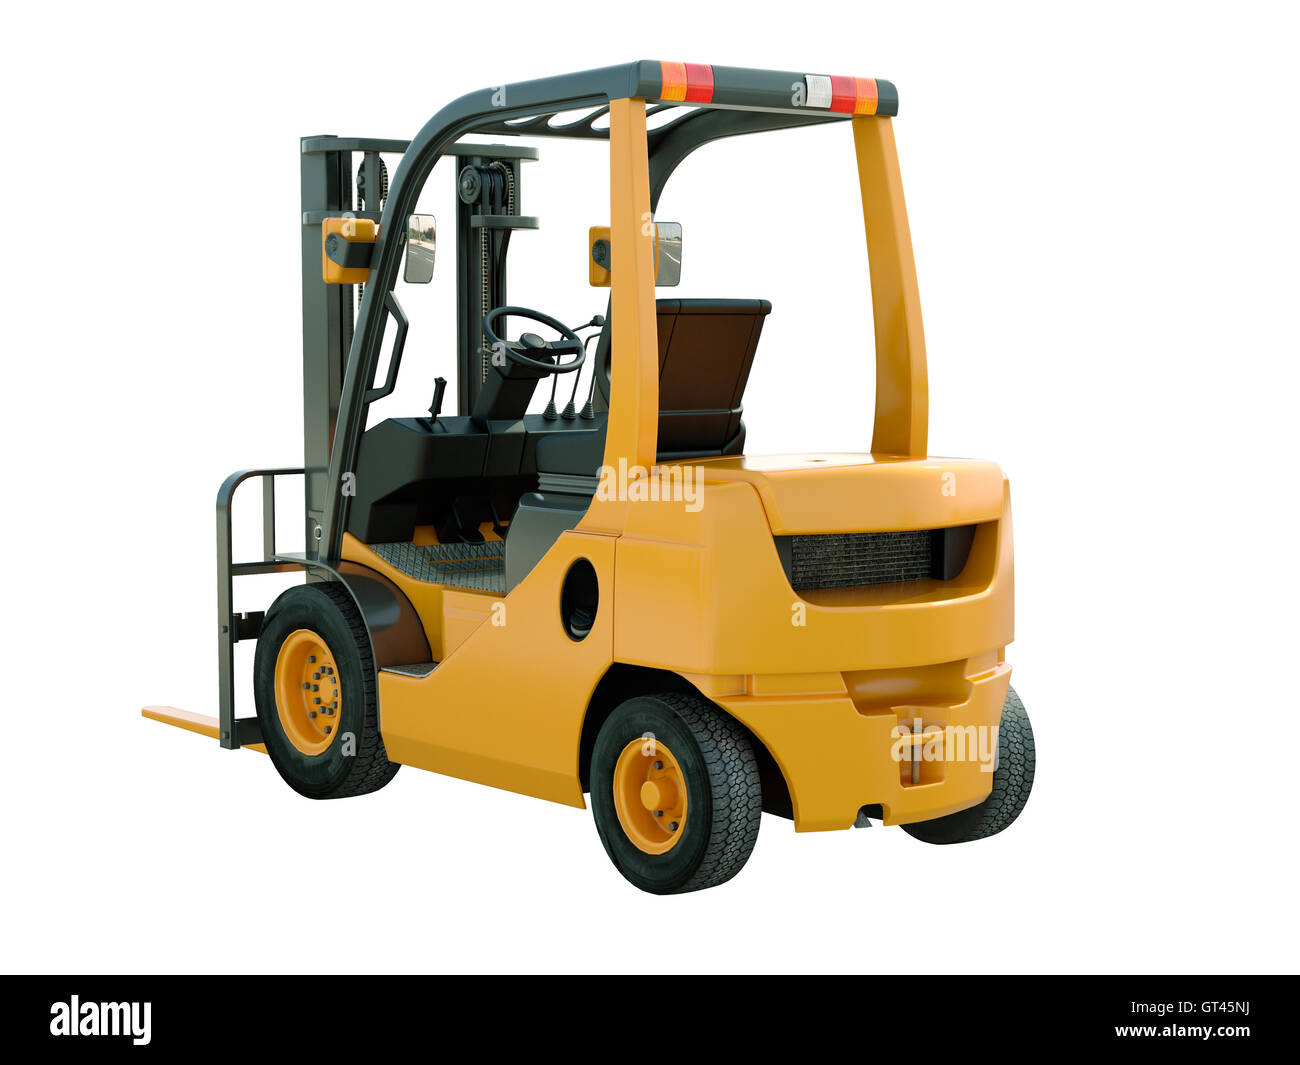 Forklift truck isolated - Stock Image